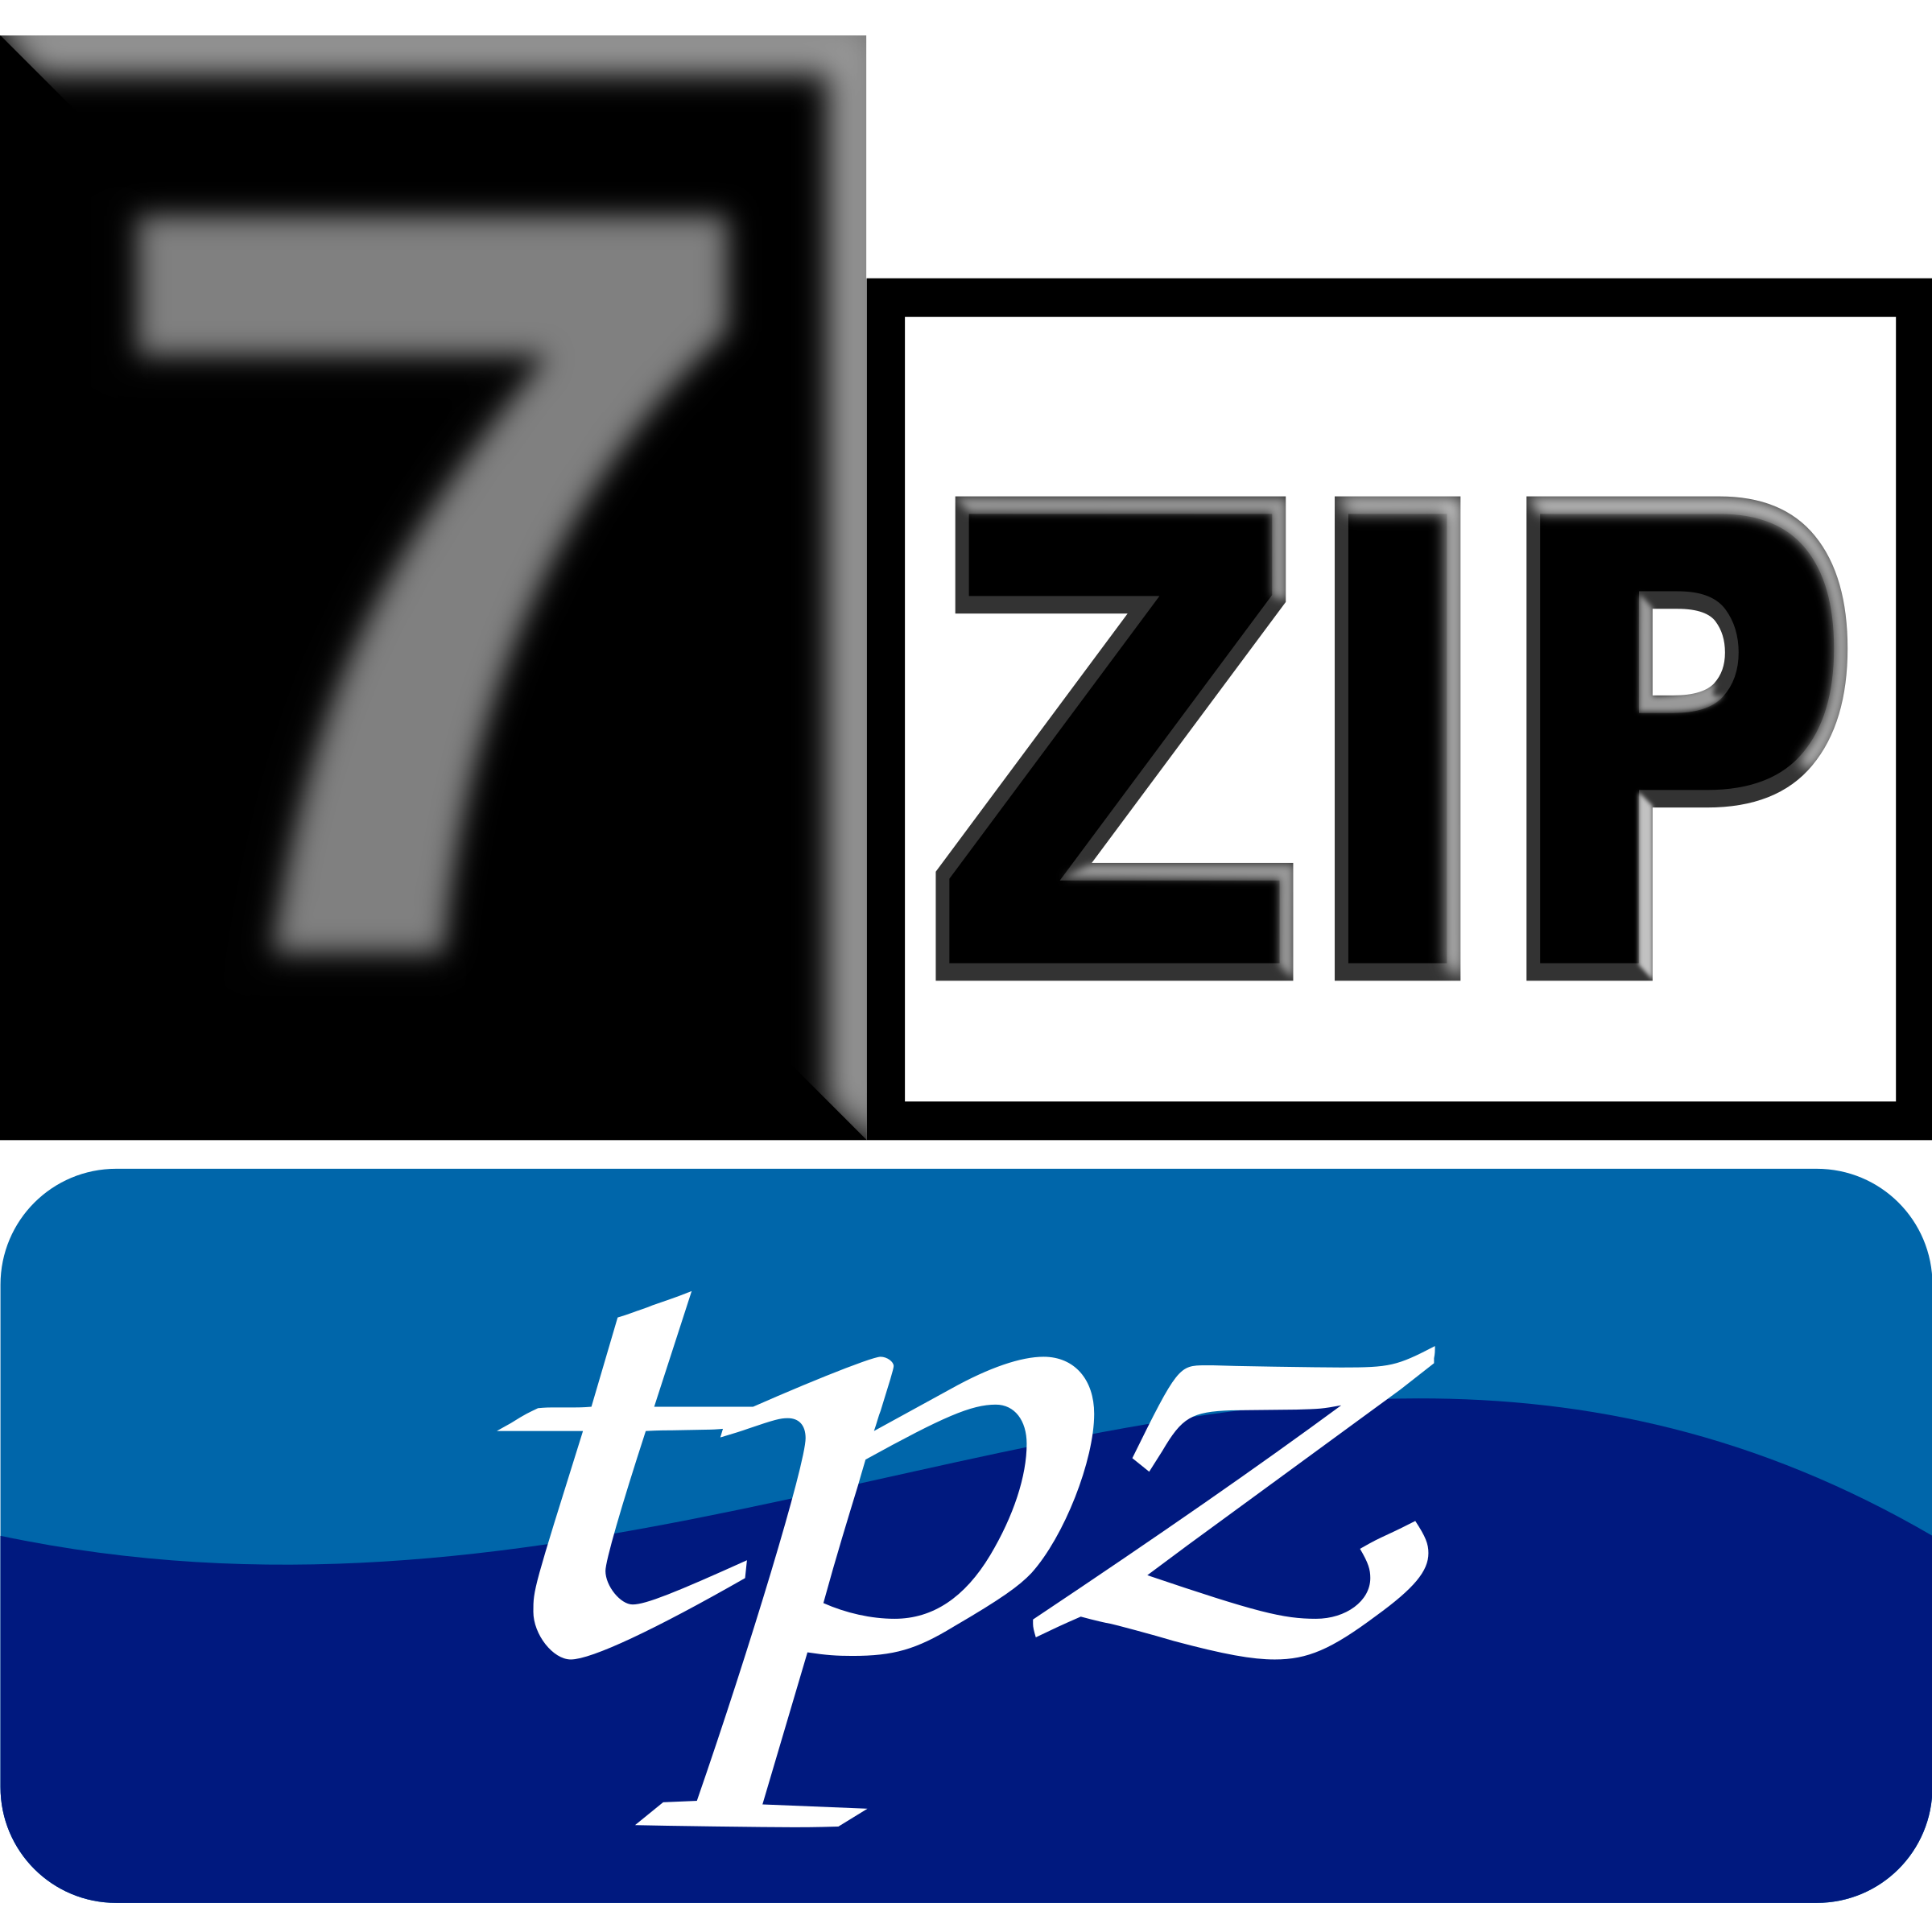 7zipClassic-tpz by kg